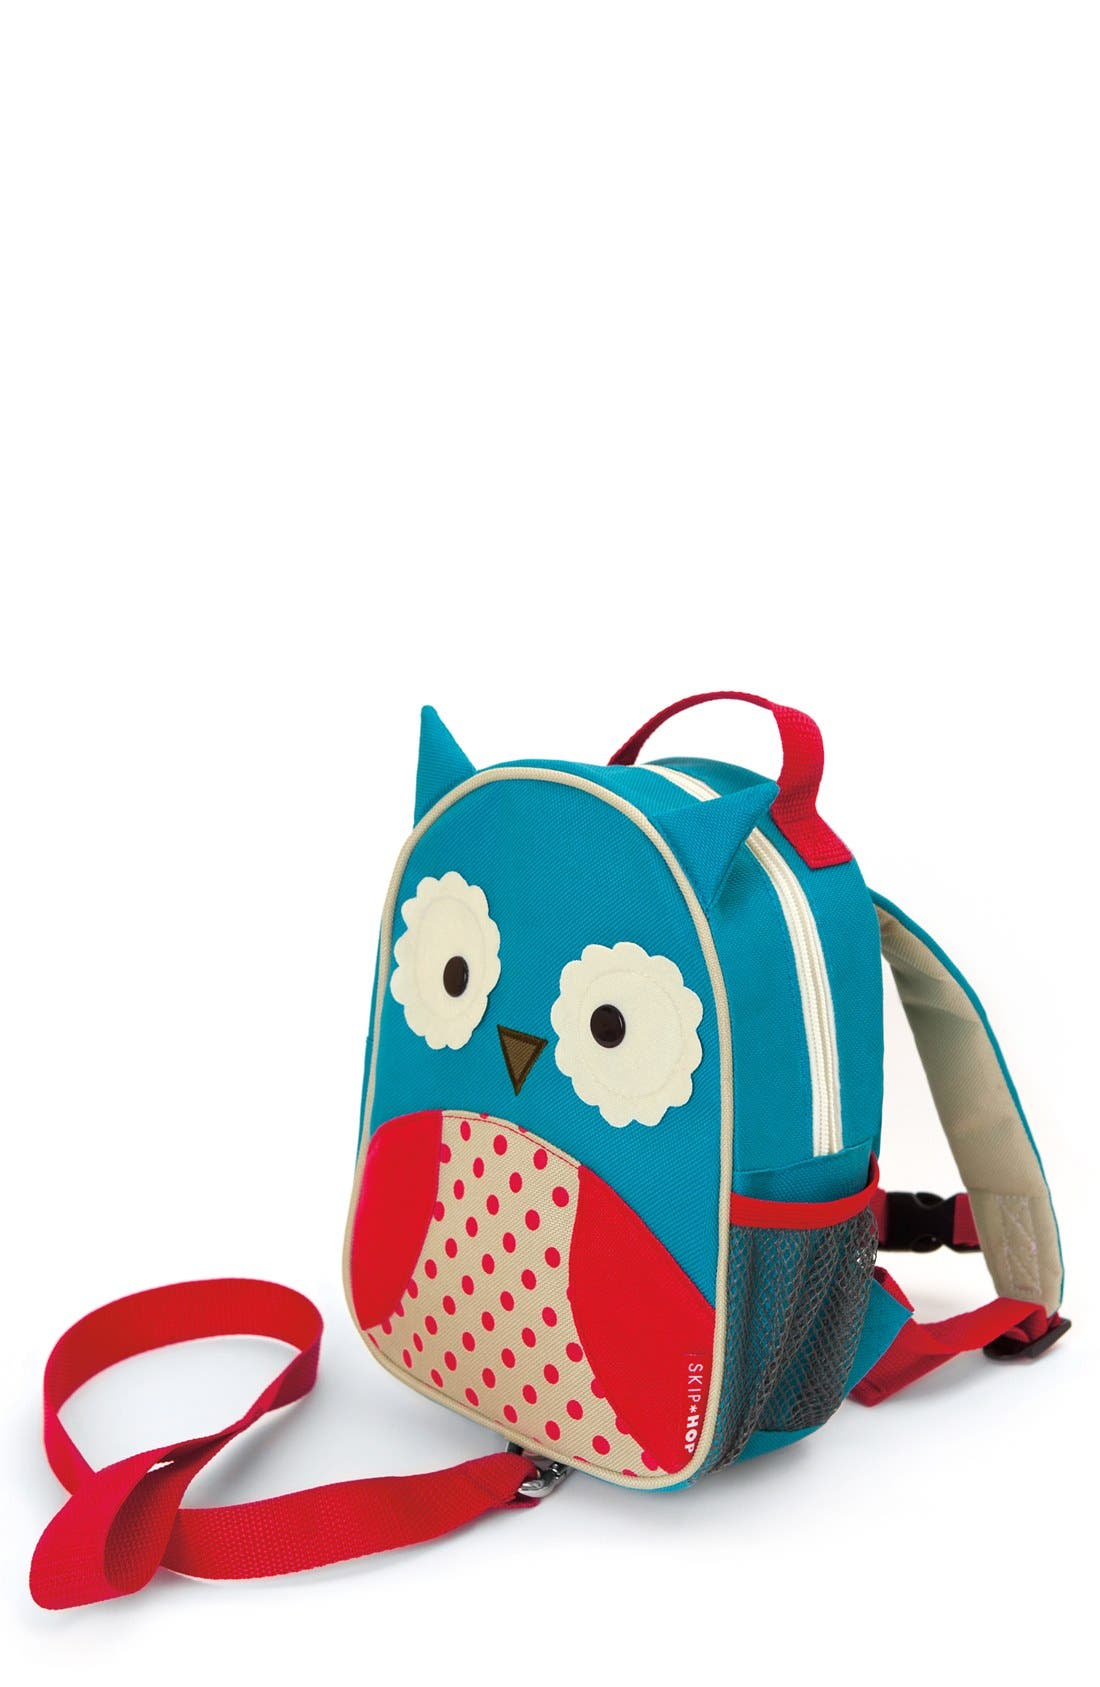 Skip Hop 'Zoo' Safety Harness Backpack (Kids)